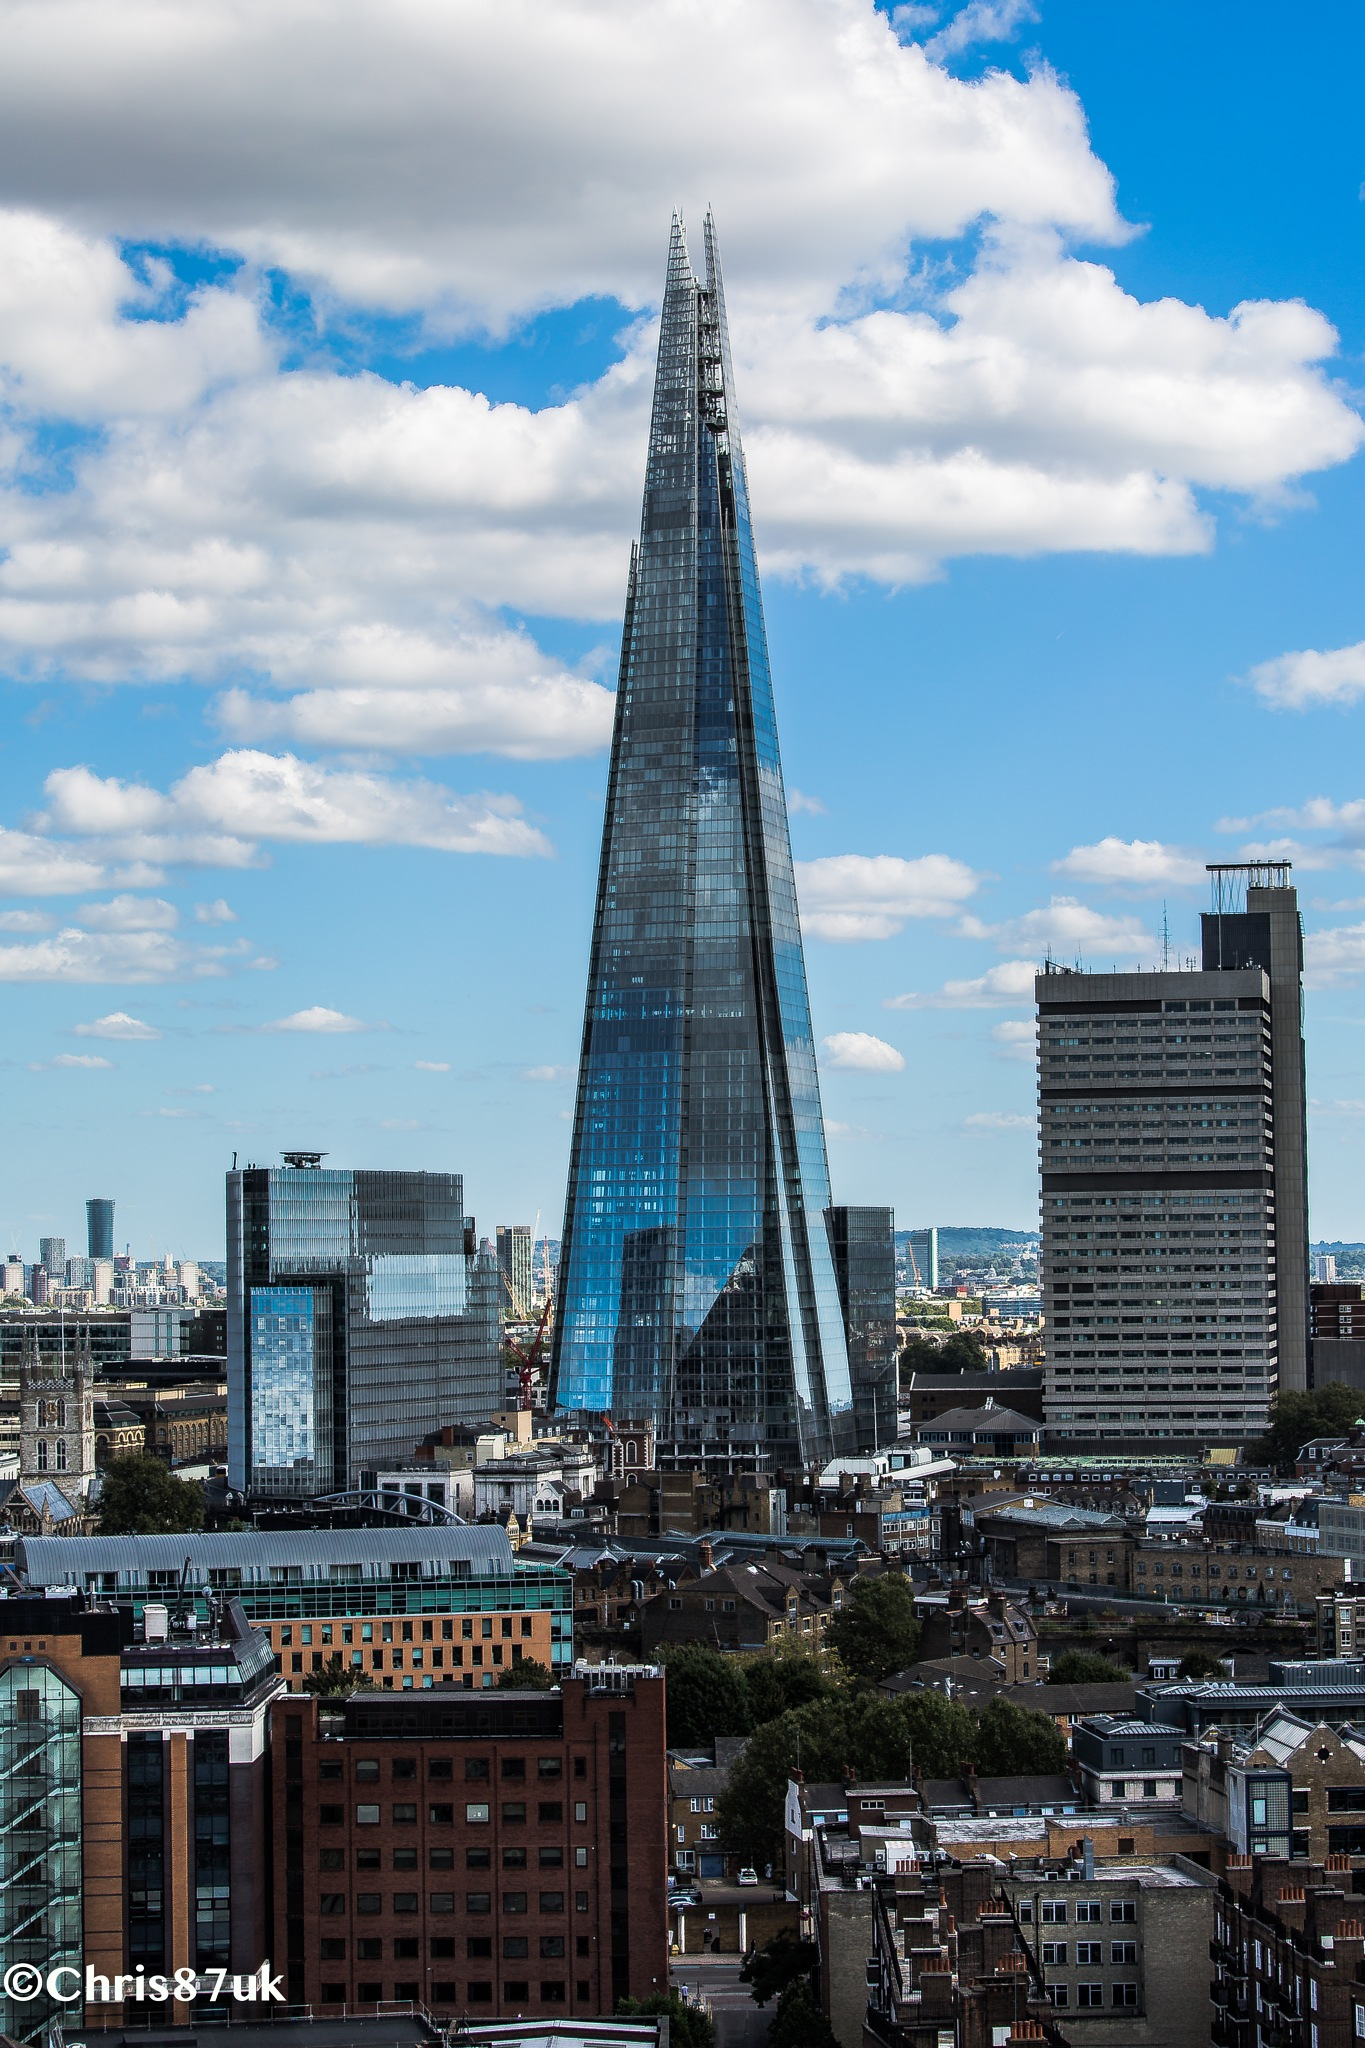 The Shard from the Tate Modern by Chris Walker